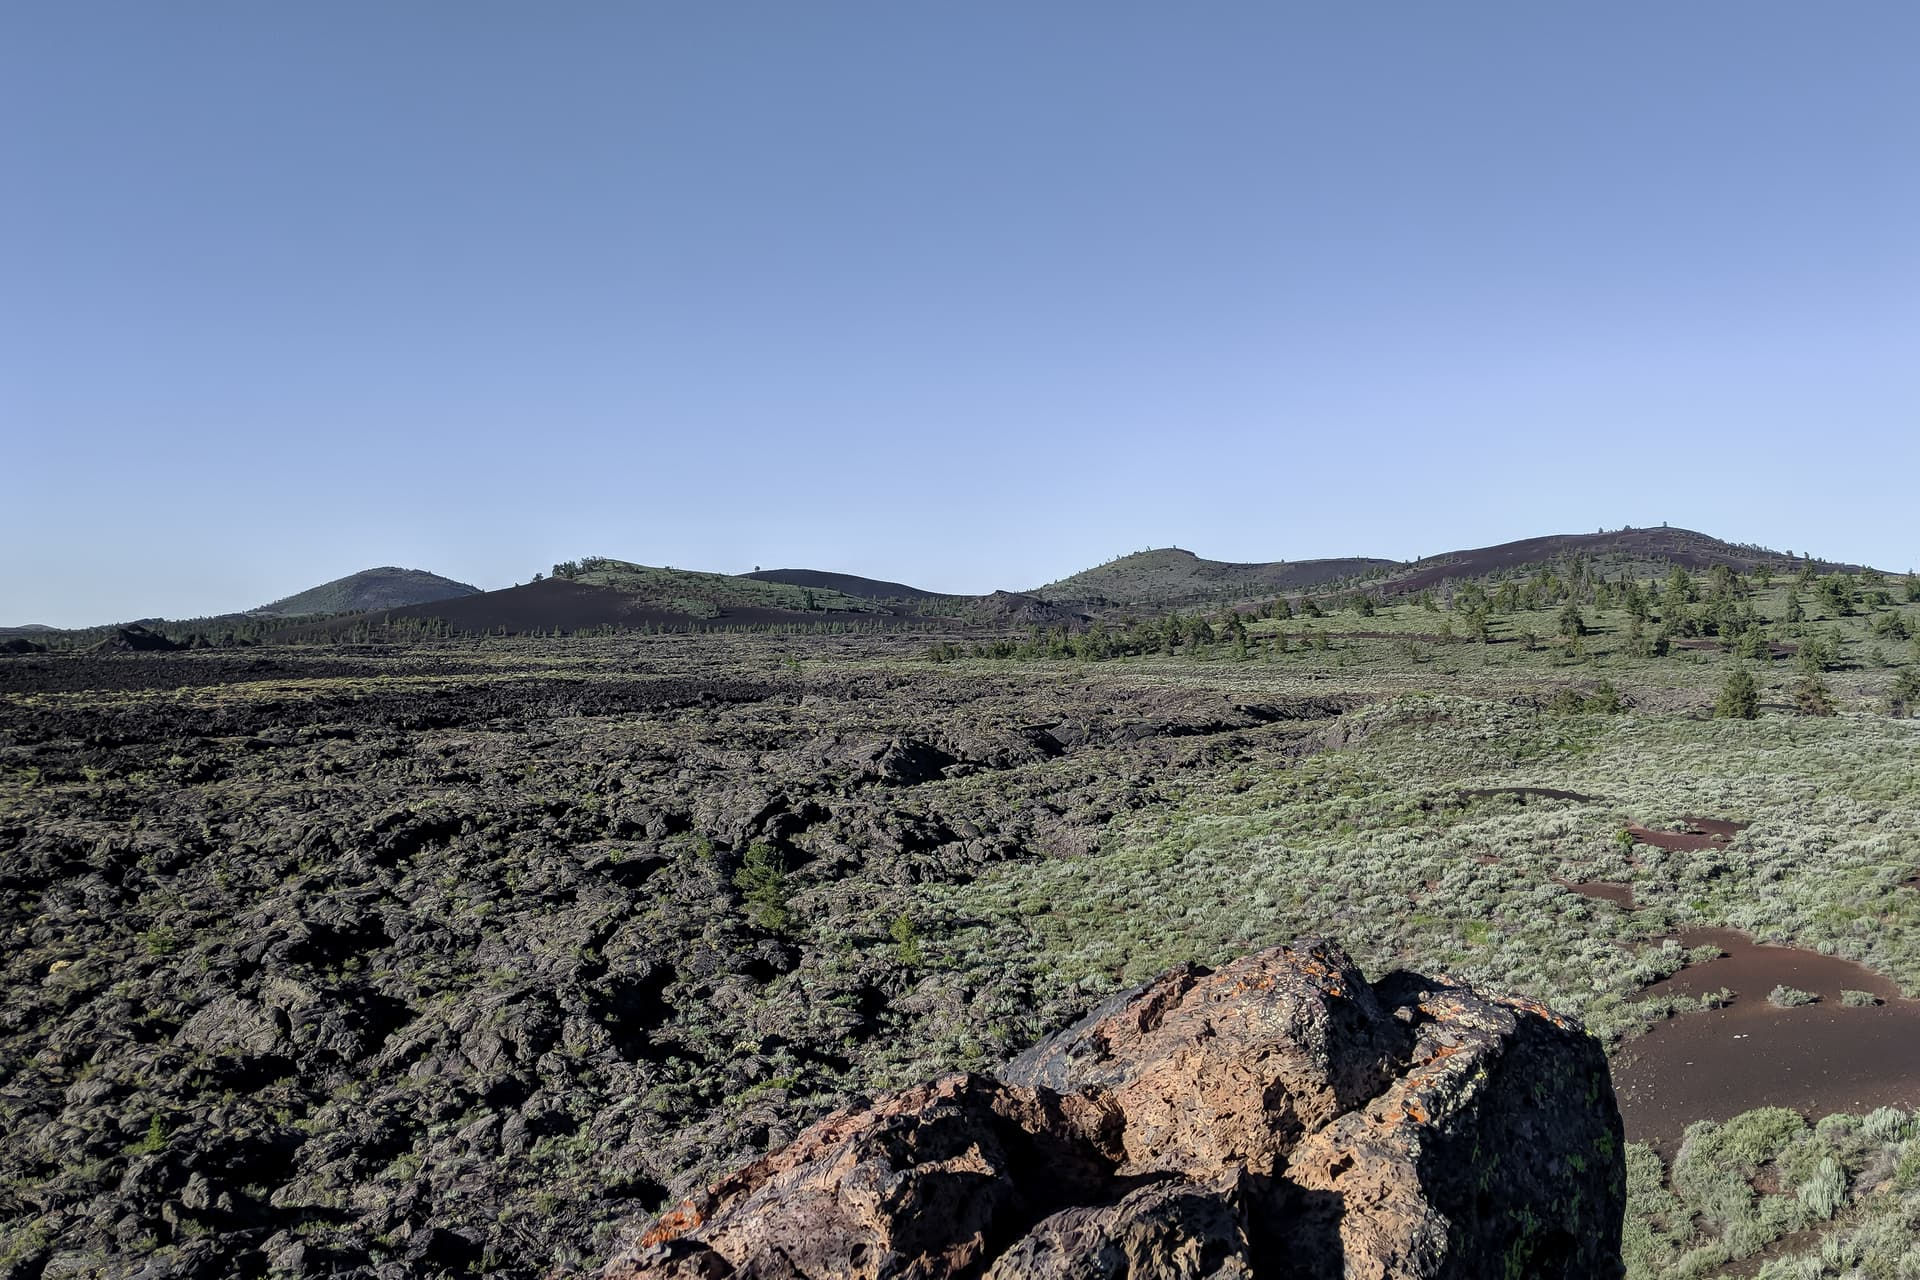 Desert scrubland abruptly ends in a dark, jagged lava field. Beyond, low cinder cones.